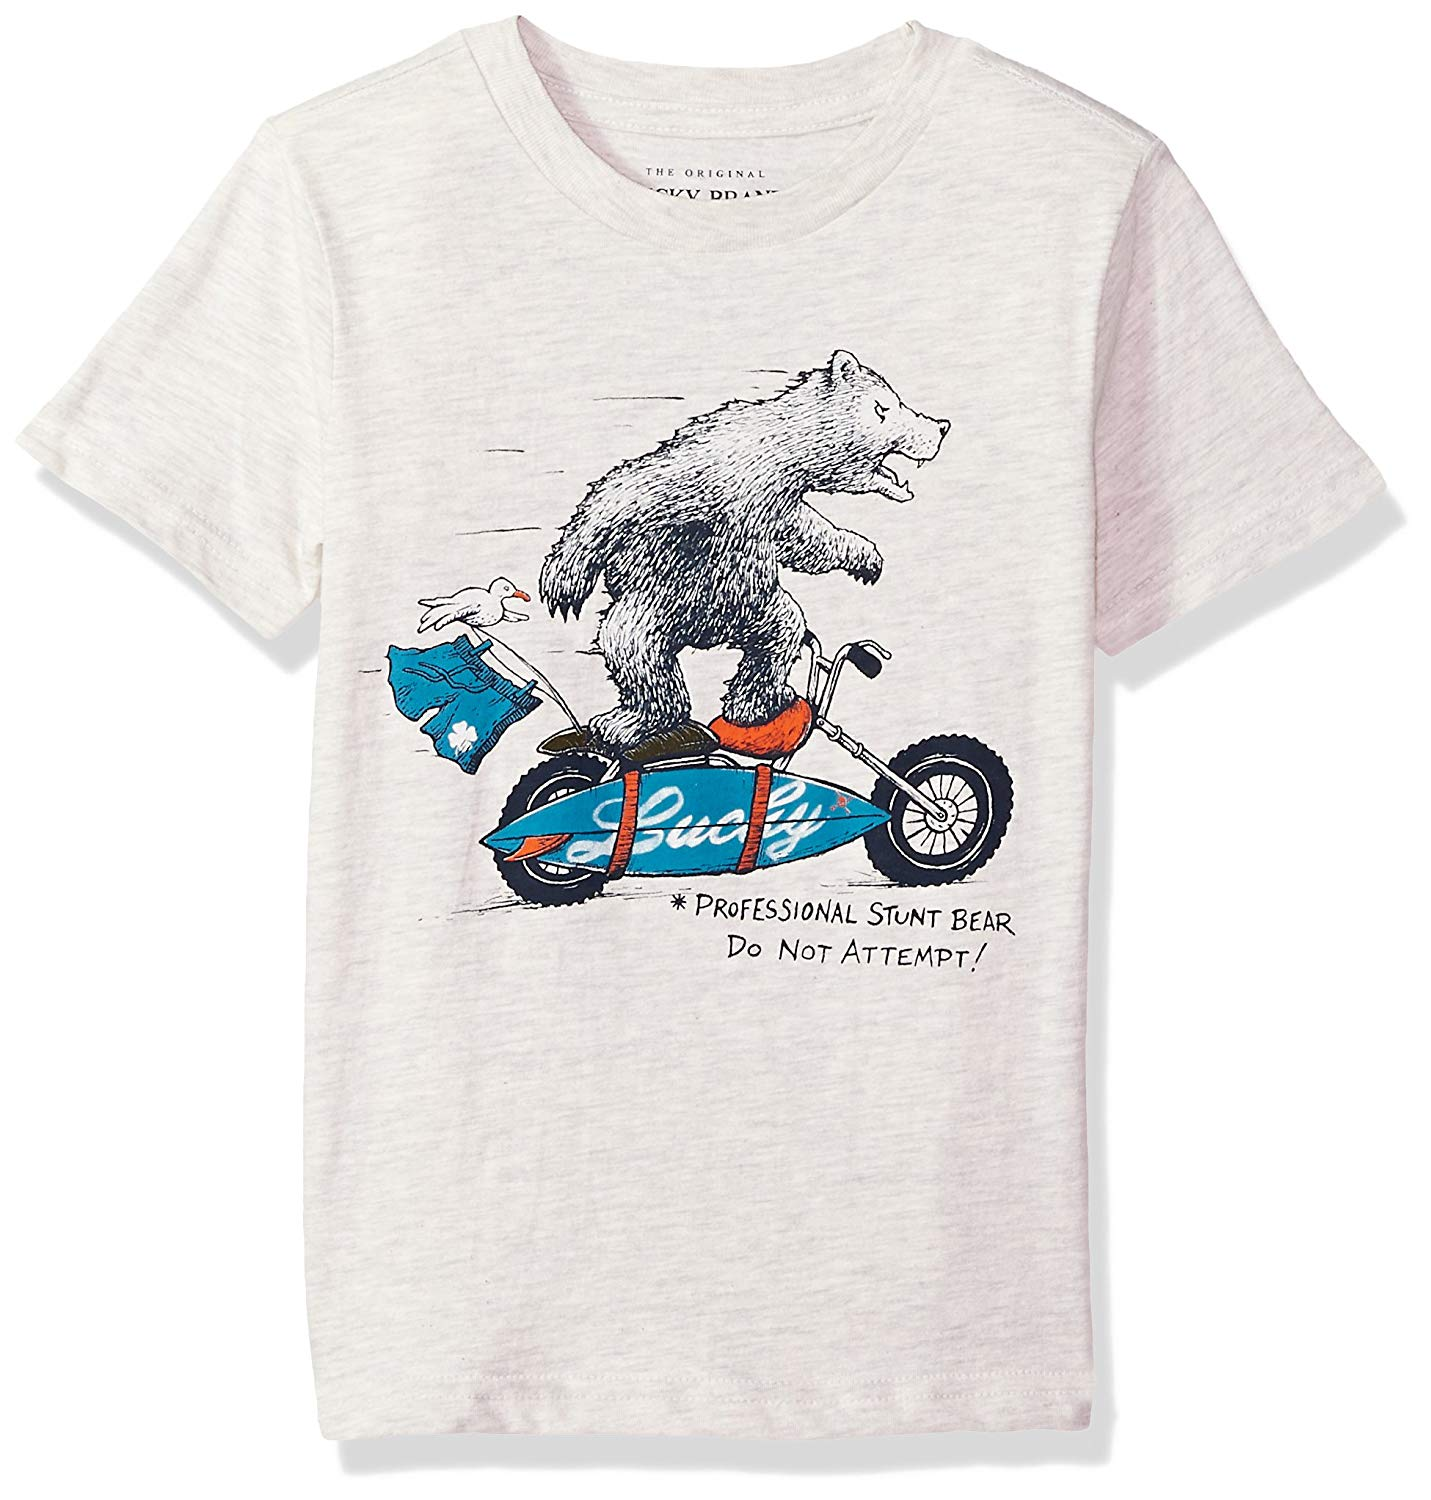 803c49d46550 Cheap Lucky Brand Tee, find Lucky Brand Tee deals on line at Alibaba.com